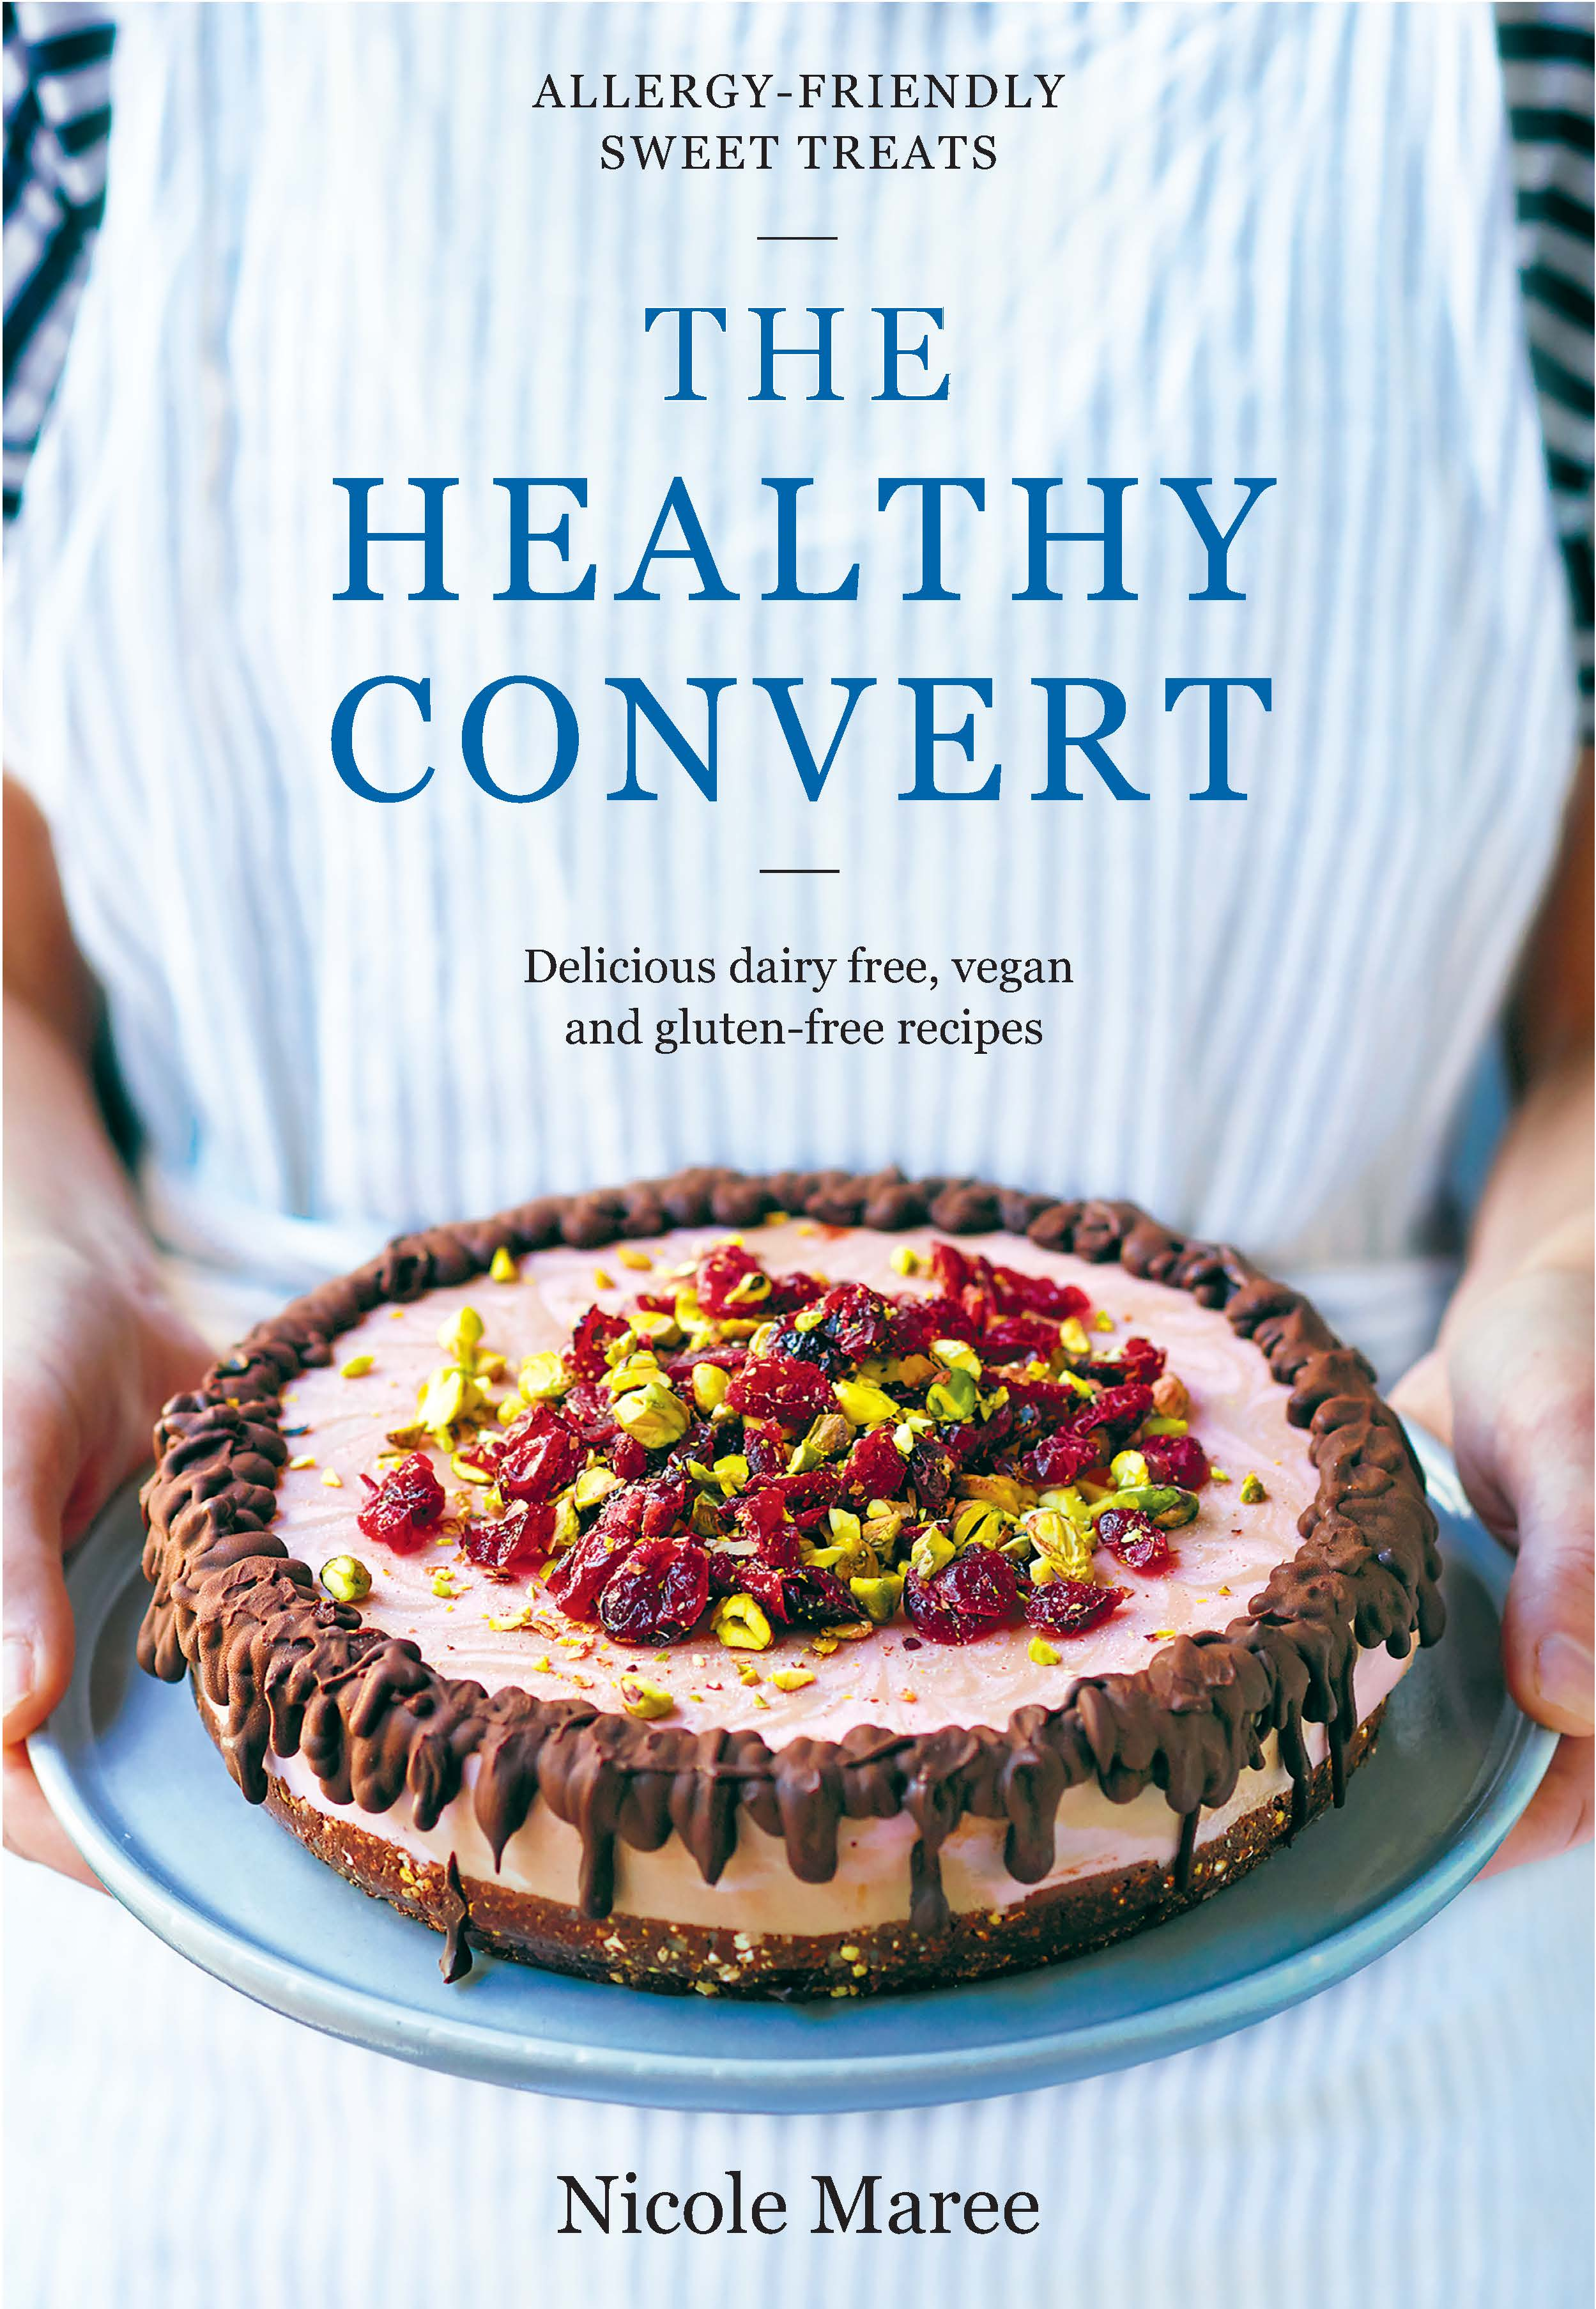 The Healthy Convert